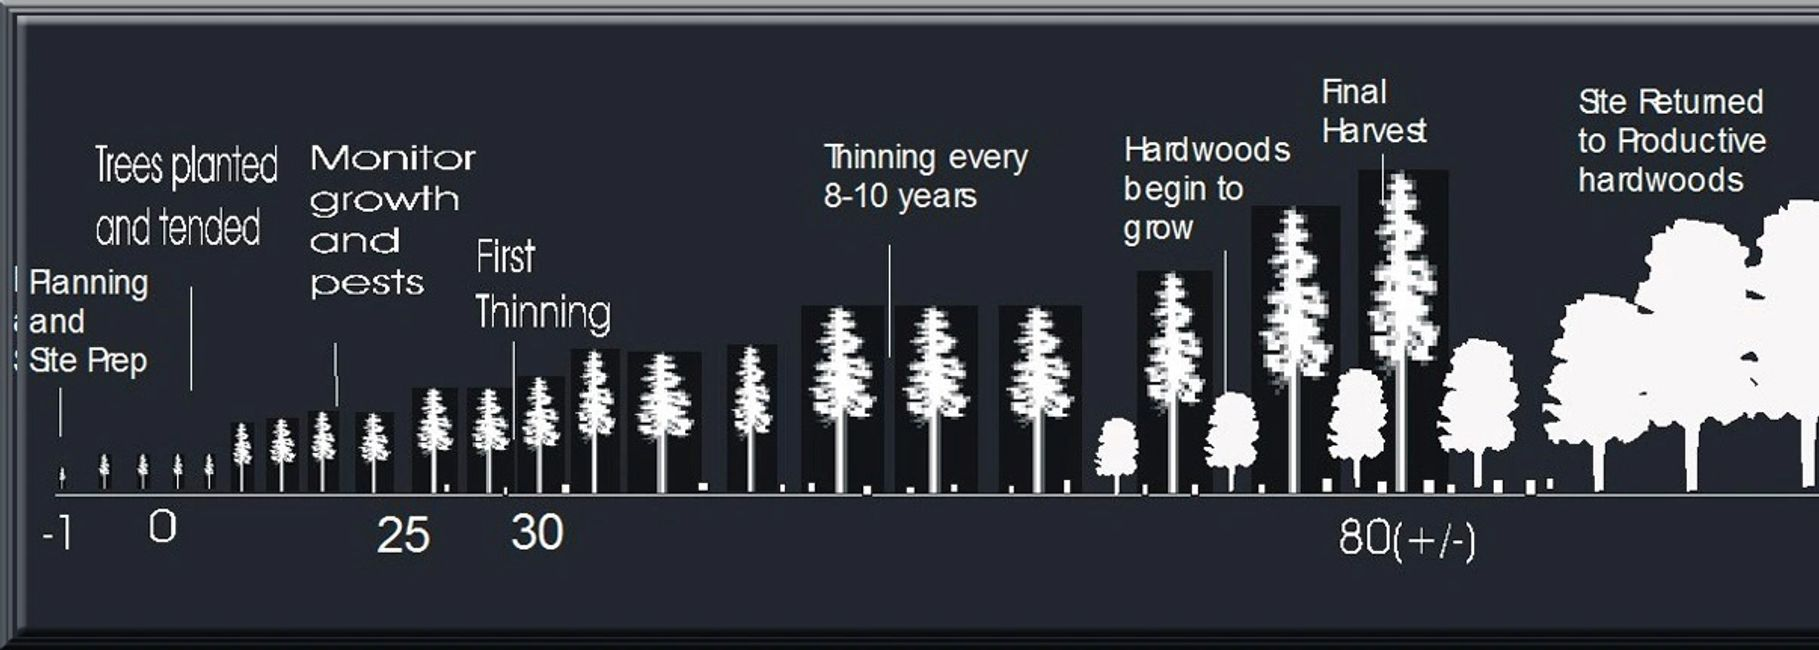 Plantation management stage growth chart with Eccles Forestry Ltd.